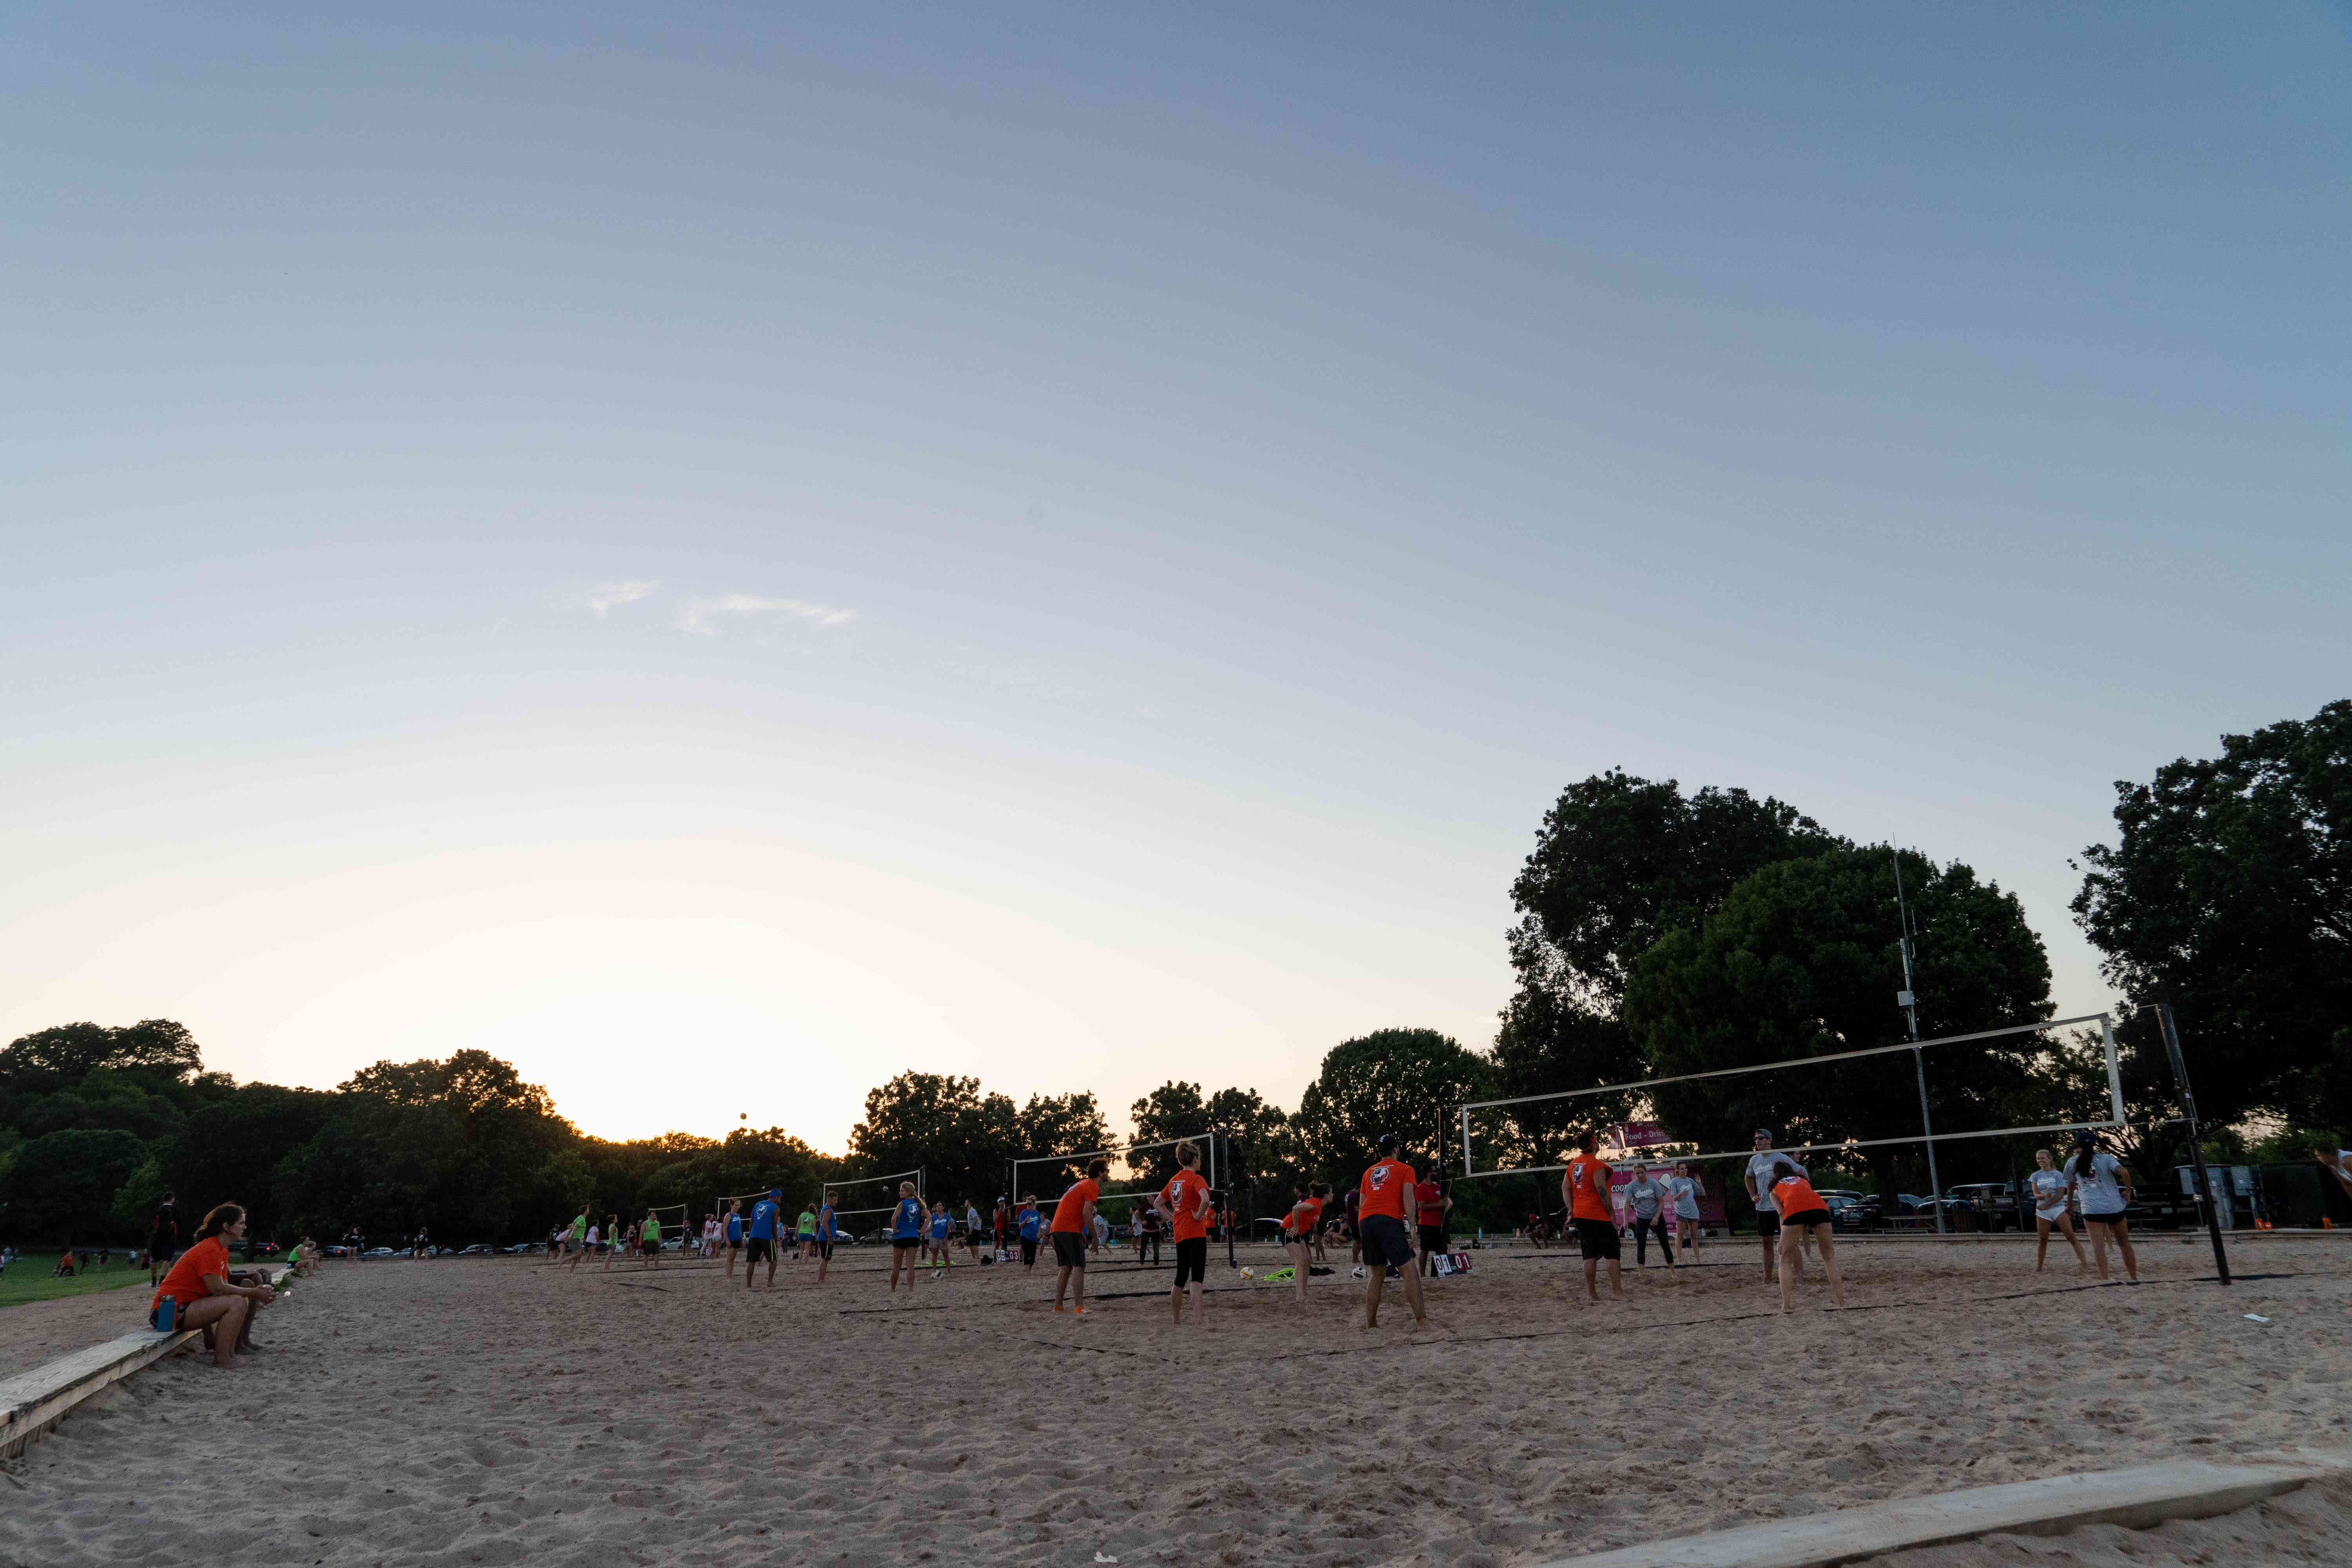 People playing volleyball in Zilker Park